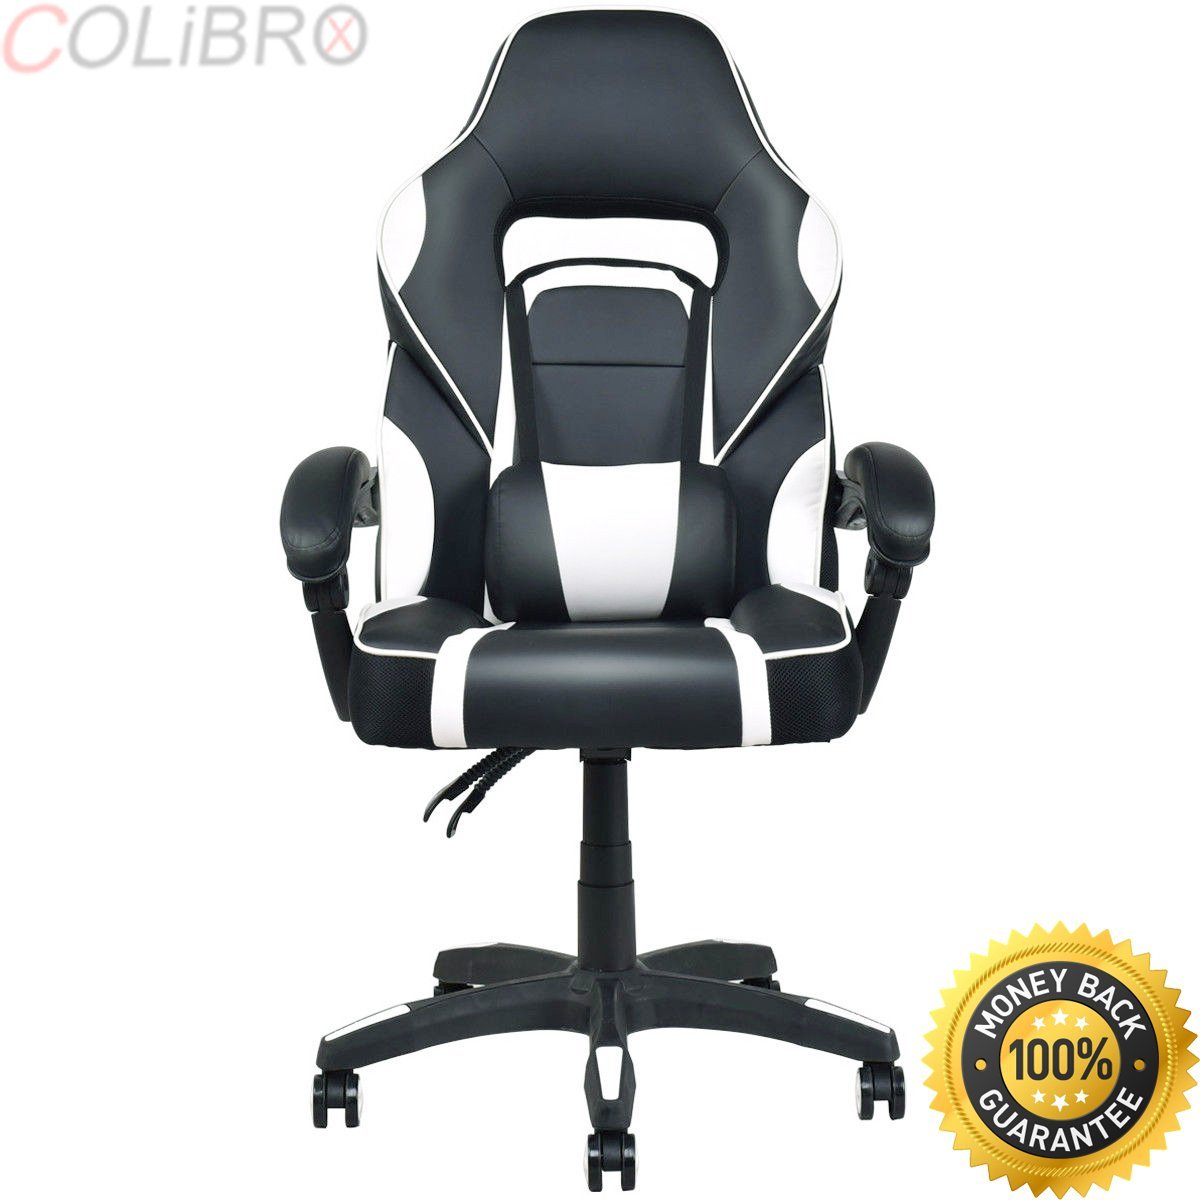 COLIBROX--Executive Racing Style PU Leather Gaming Chair High Back Recliner Office White.best choice products executive racing office chair. racing office chair cheap. best gaming chair amazon.